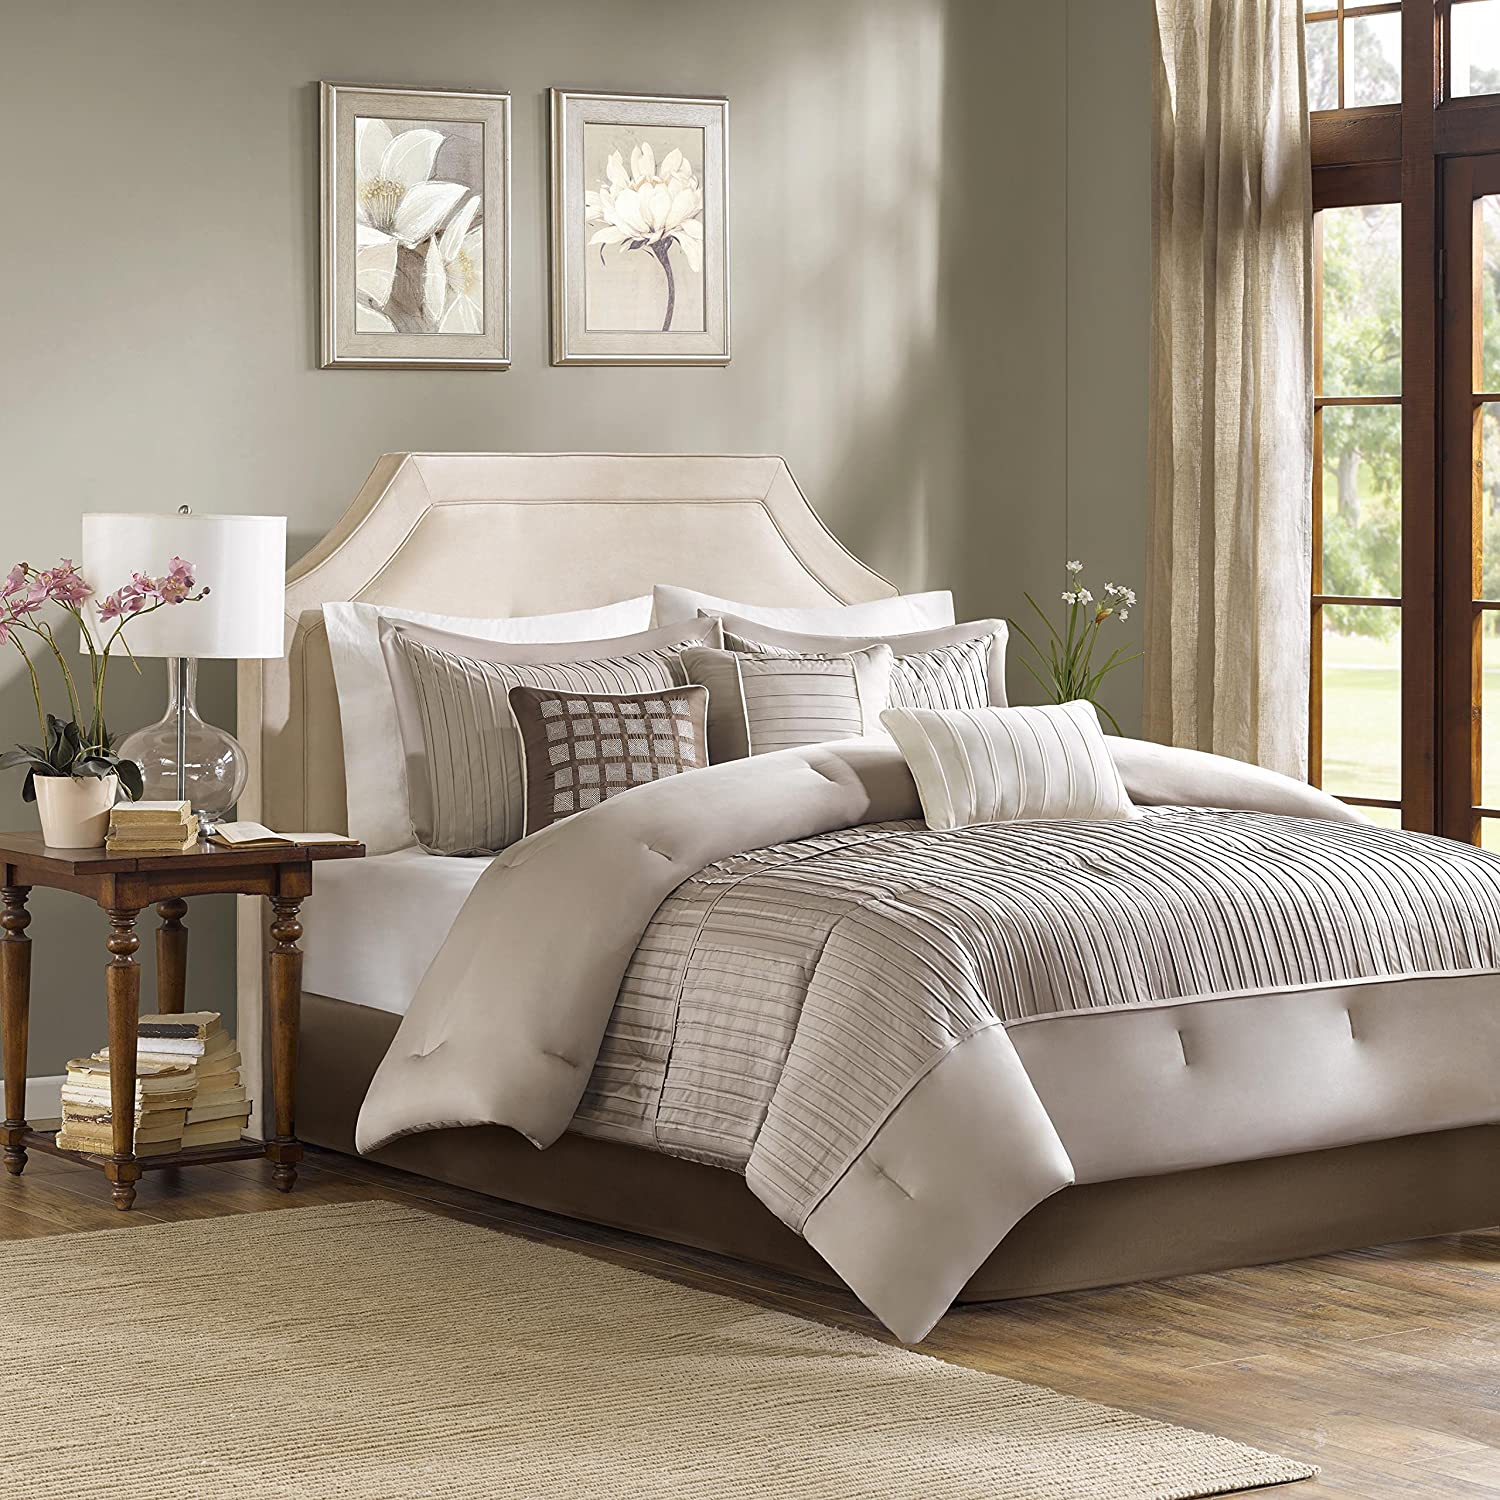 Madison Park Trinity Comforter Set, California King, Taup